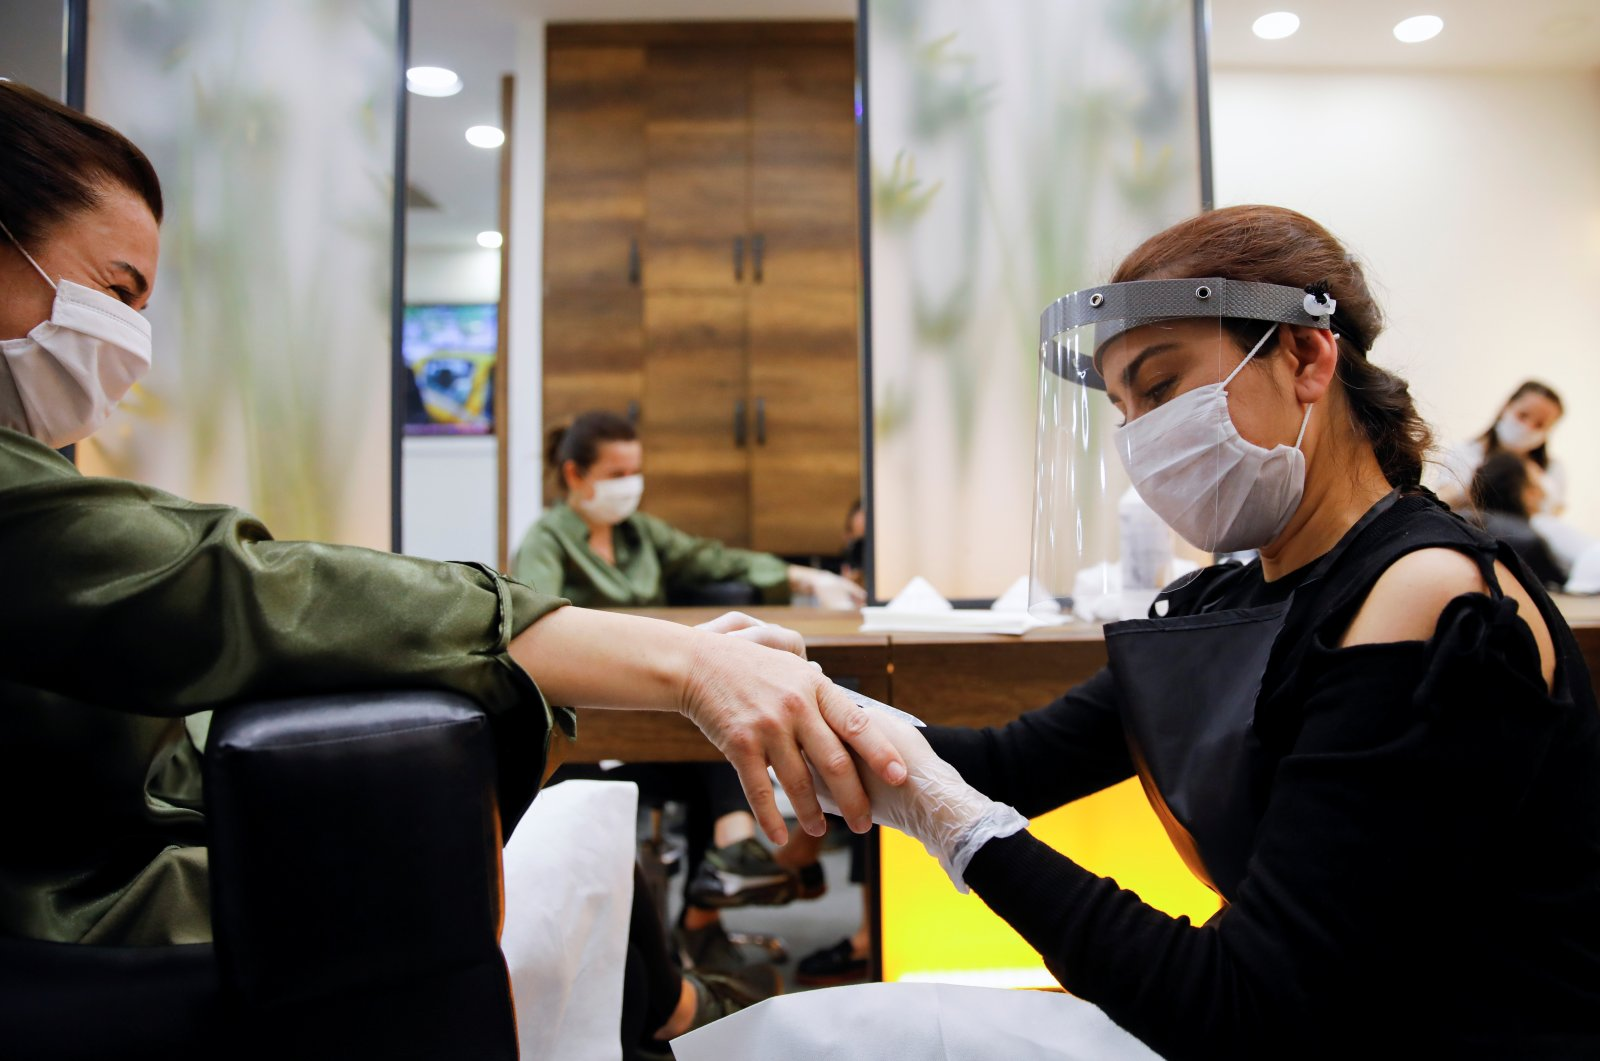 An employee gives manicure to her customer Pınar Ersin, both wearing protective masks in Istanbul, Turkey, May 11, 2020. (REUTERS Photo)